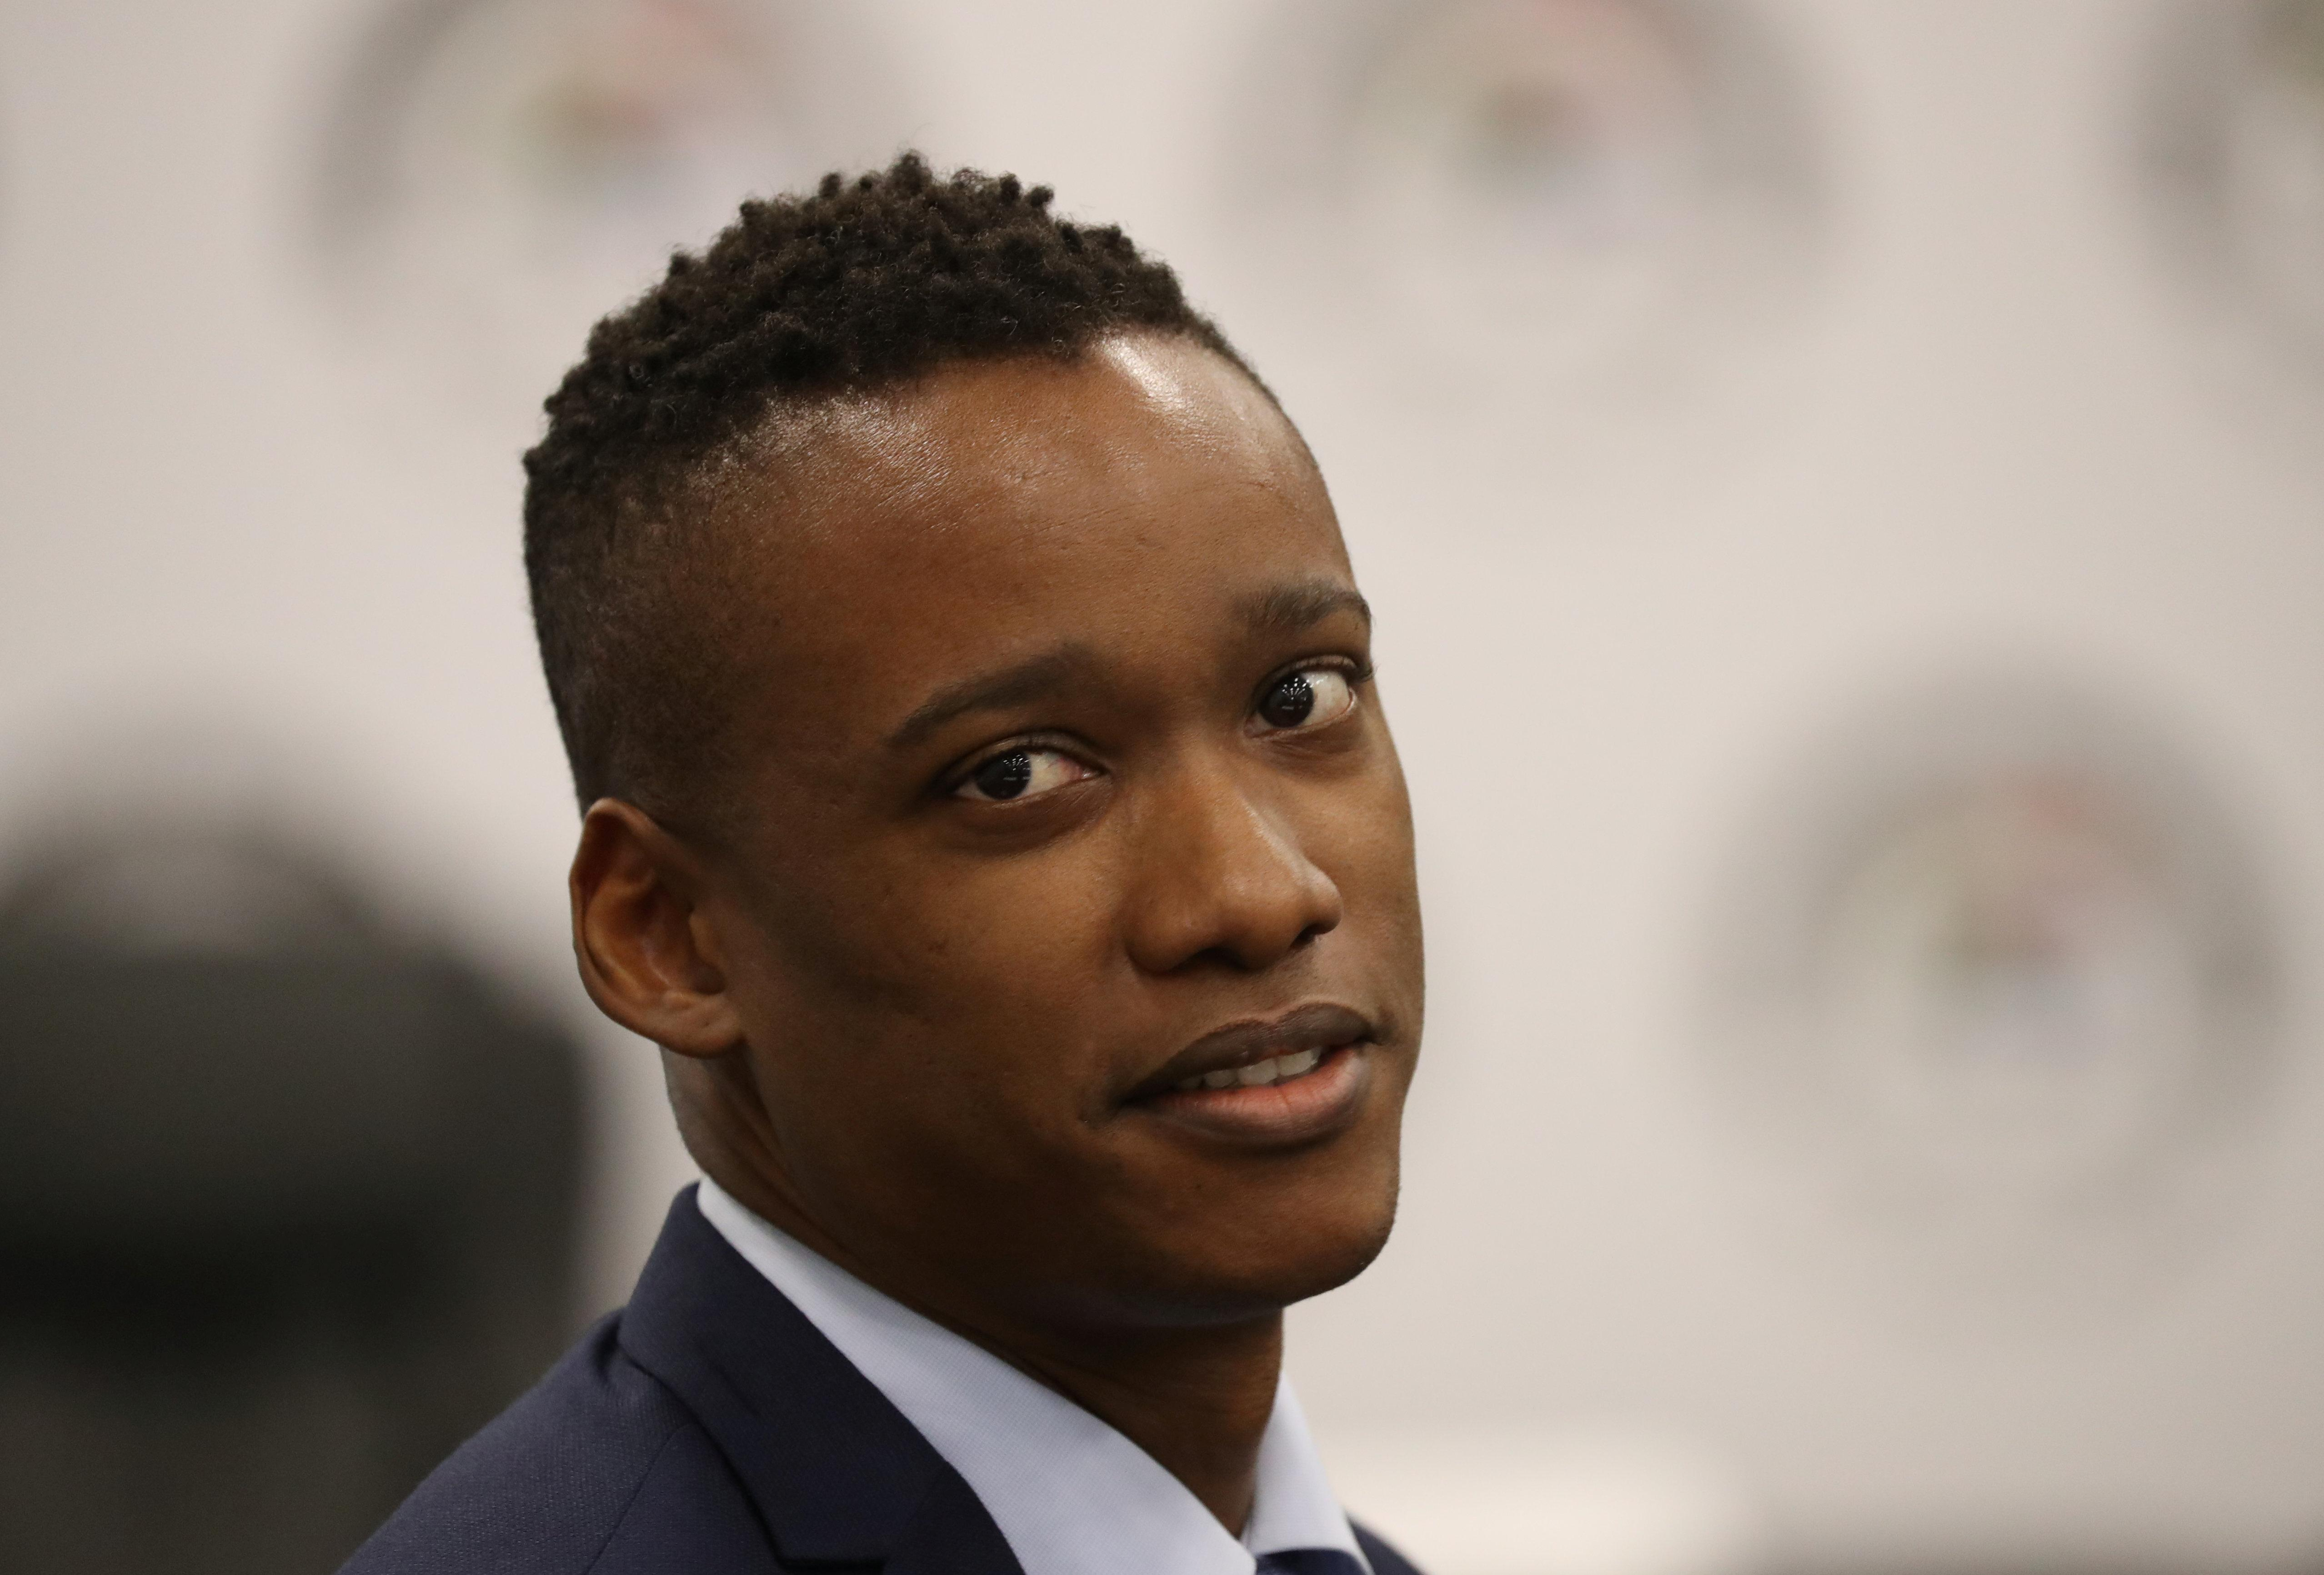 'Everything was cool': Zuma son denies wrongdoing at graft inquiry